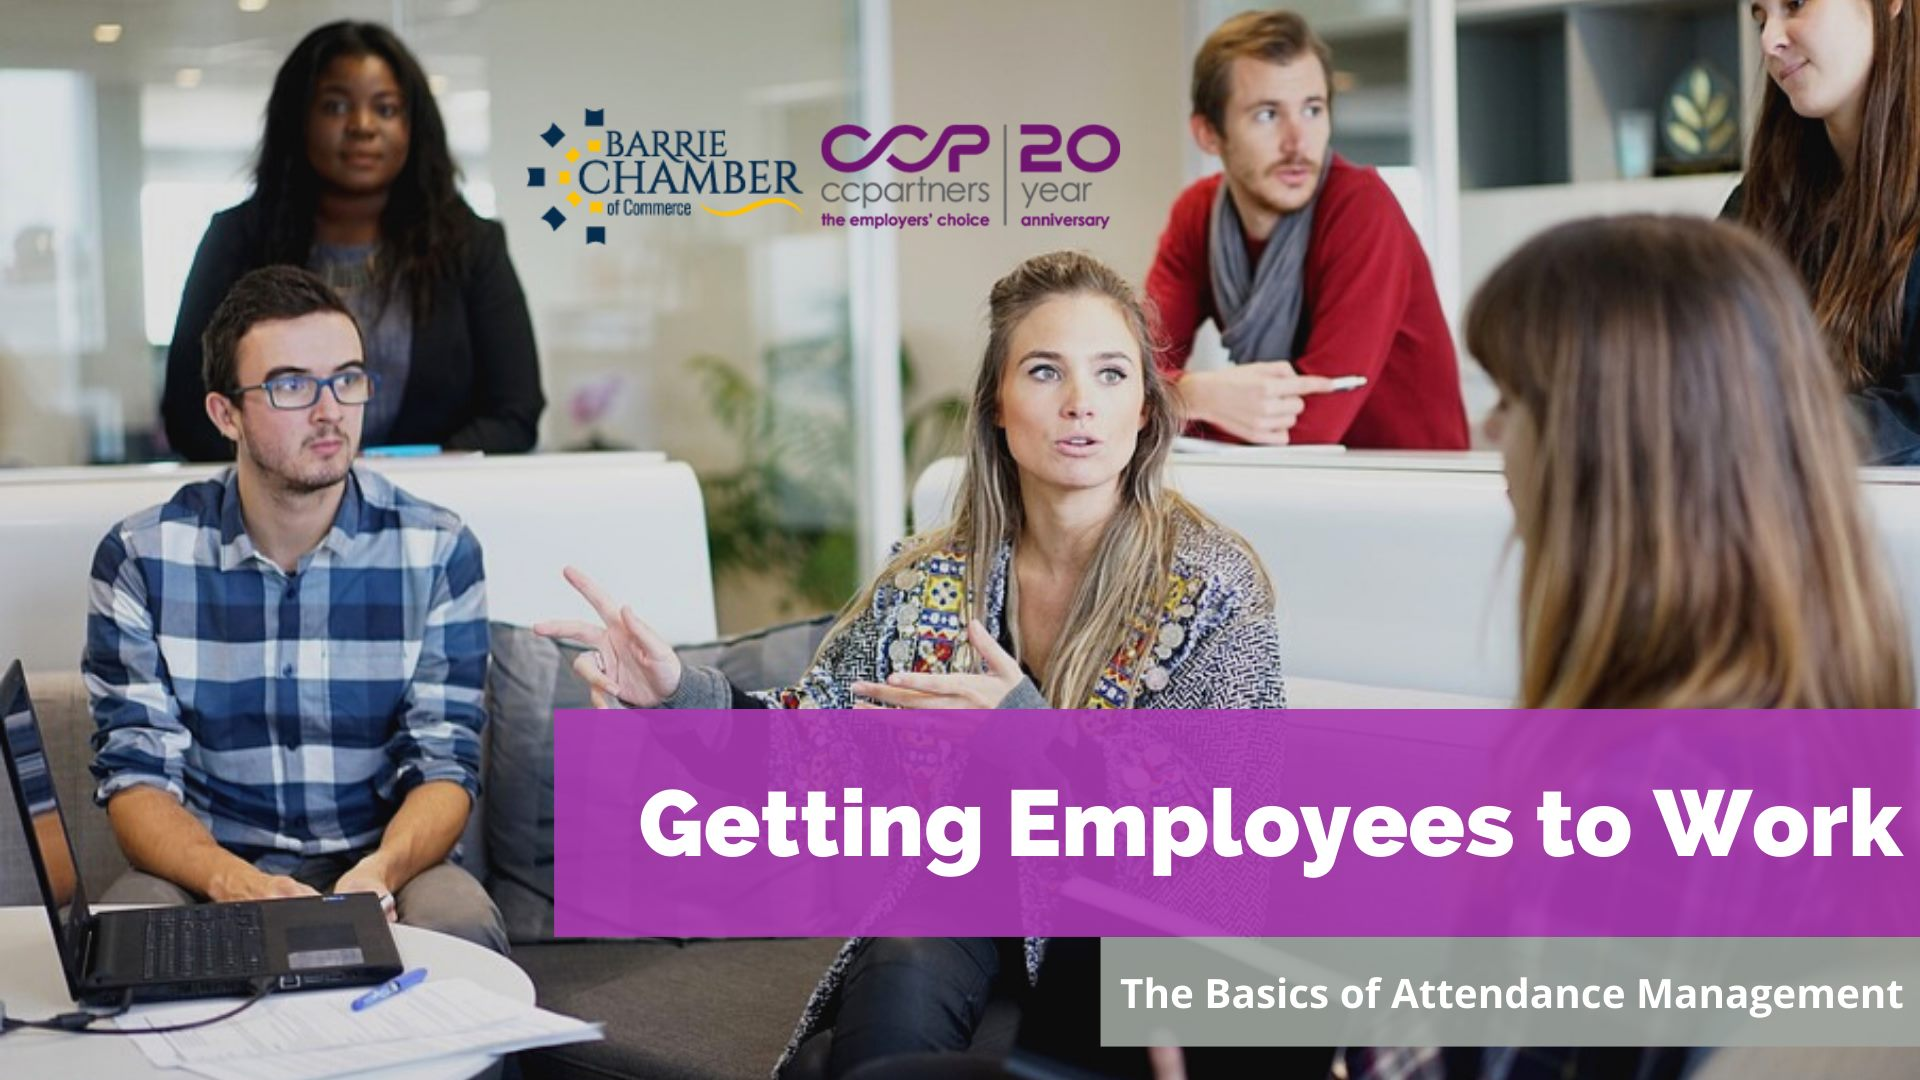 Getting Employees to Work